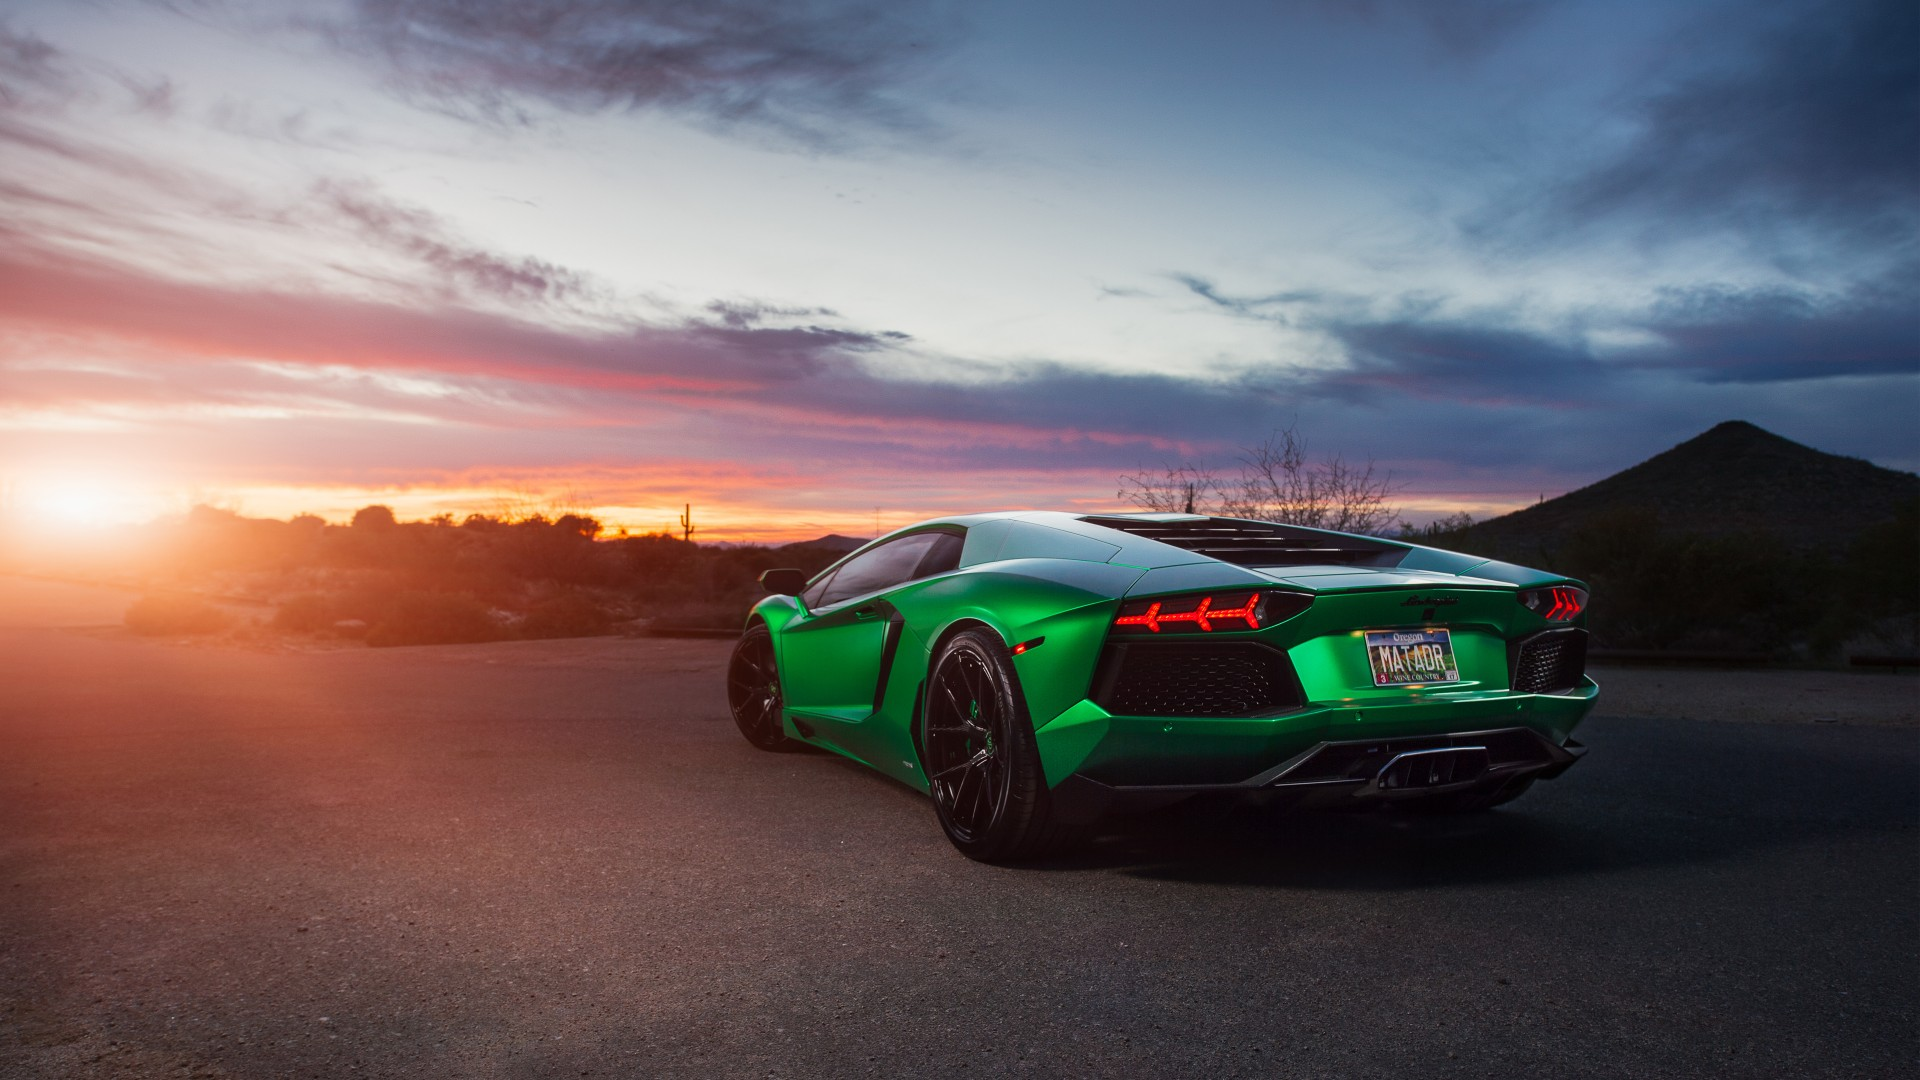 4k Hd Wallapaper: Lamborghini Aventador Green 4K Wallpaper